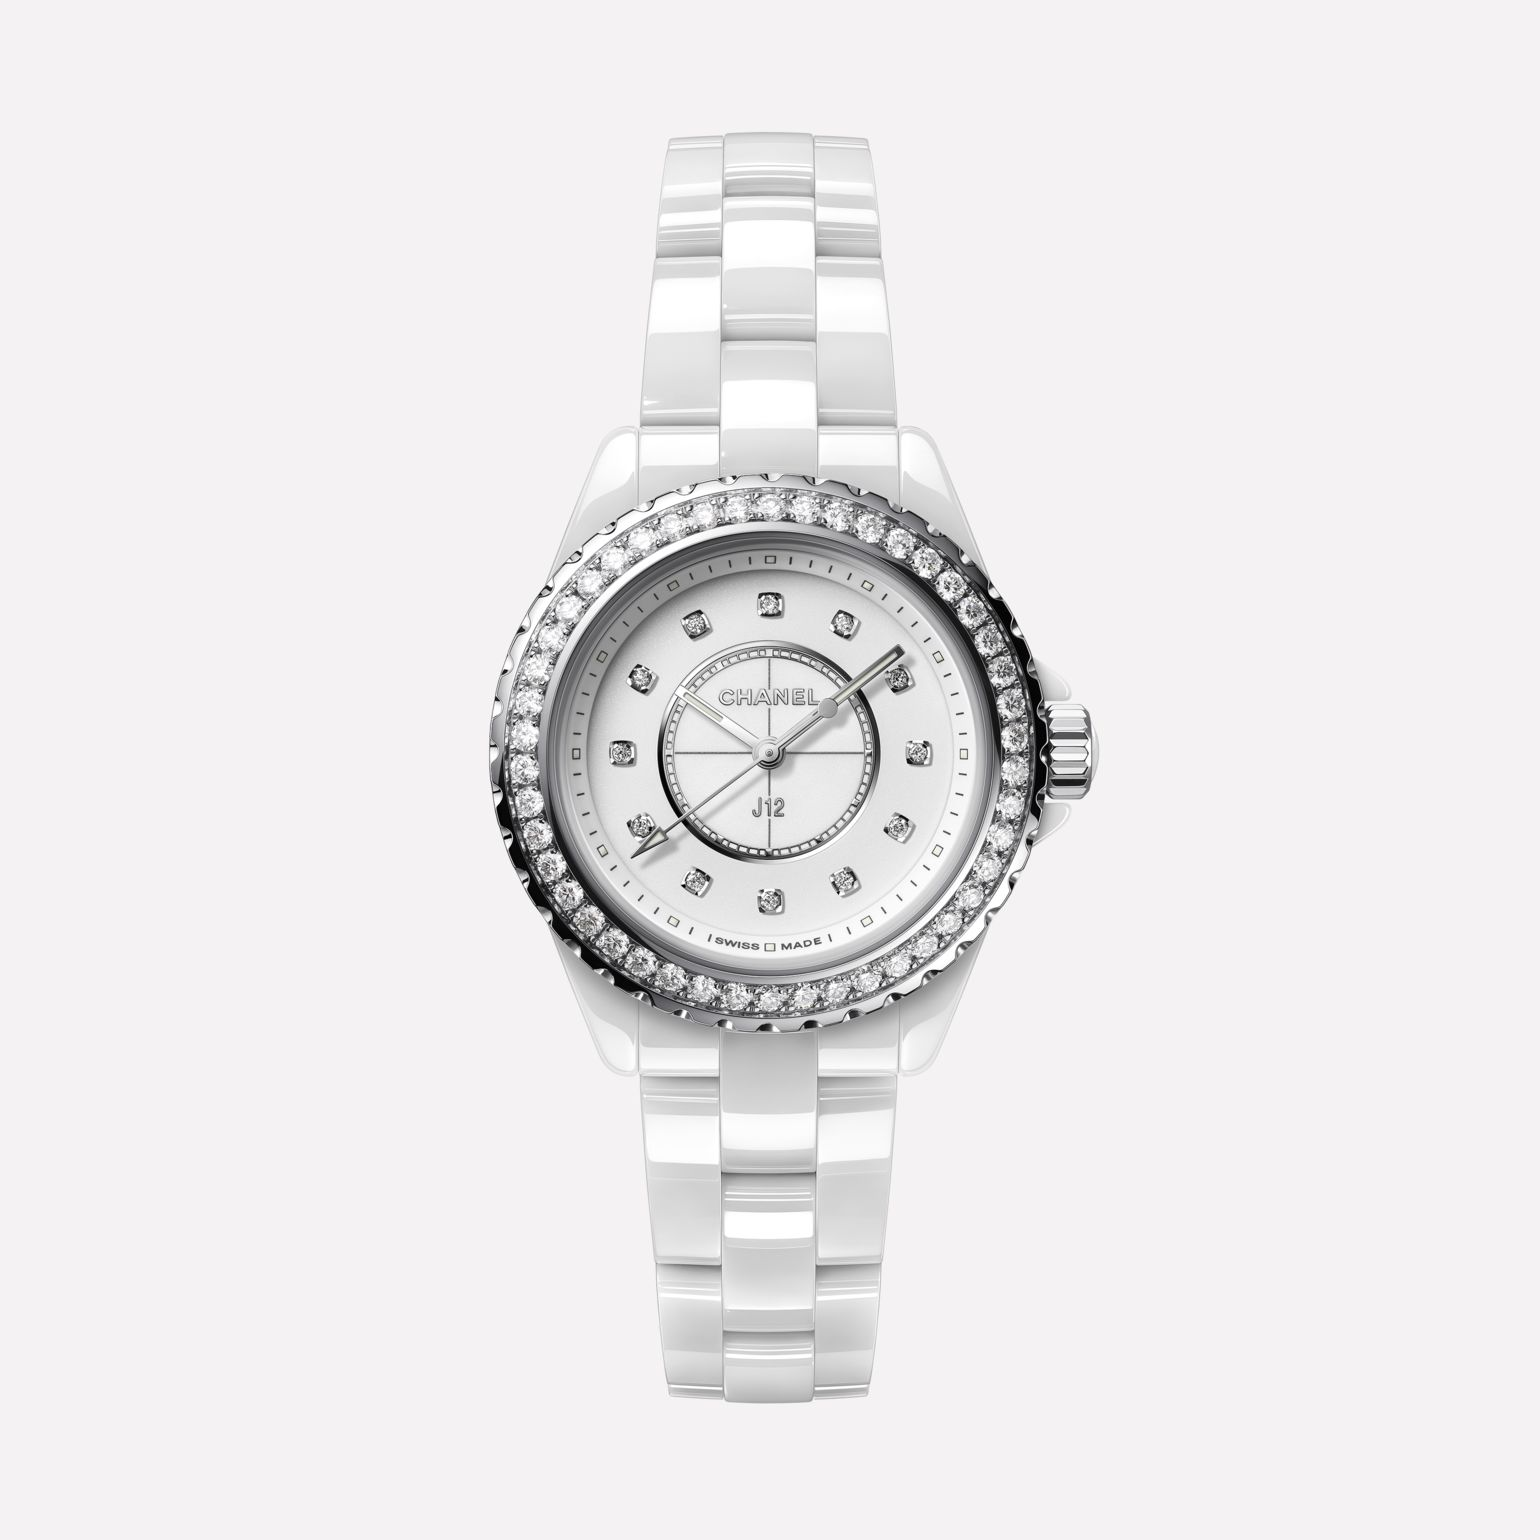 J12 Watch, 33 mm White highly resistant ceramic, steel and diamonds